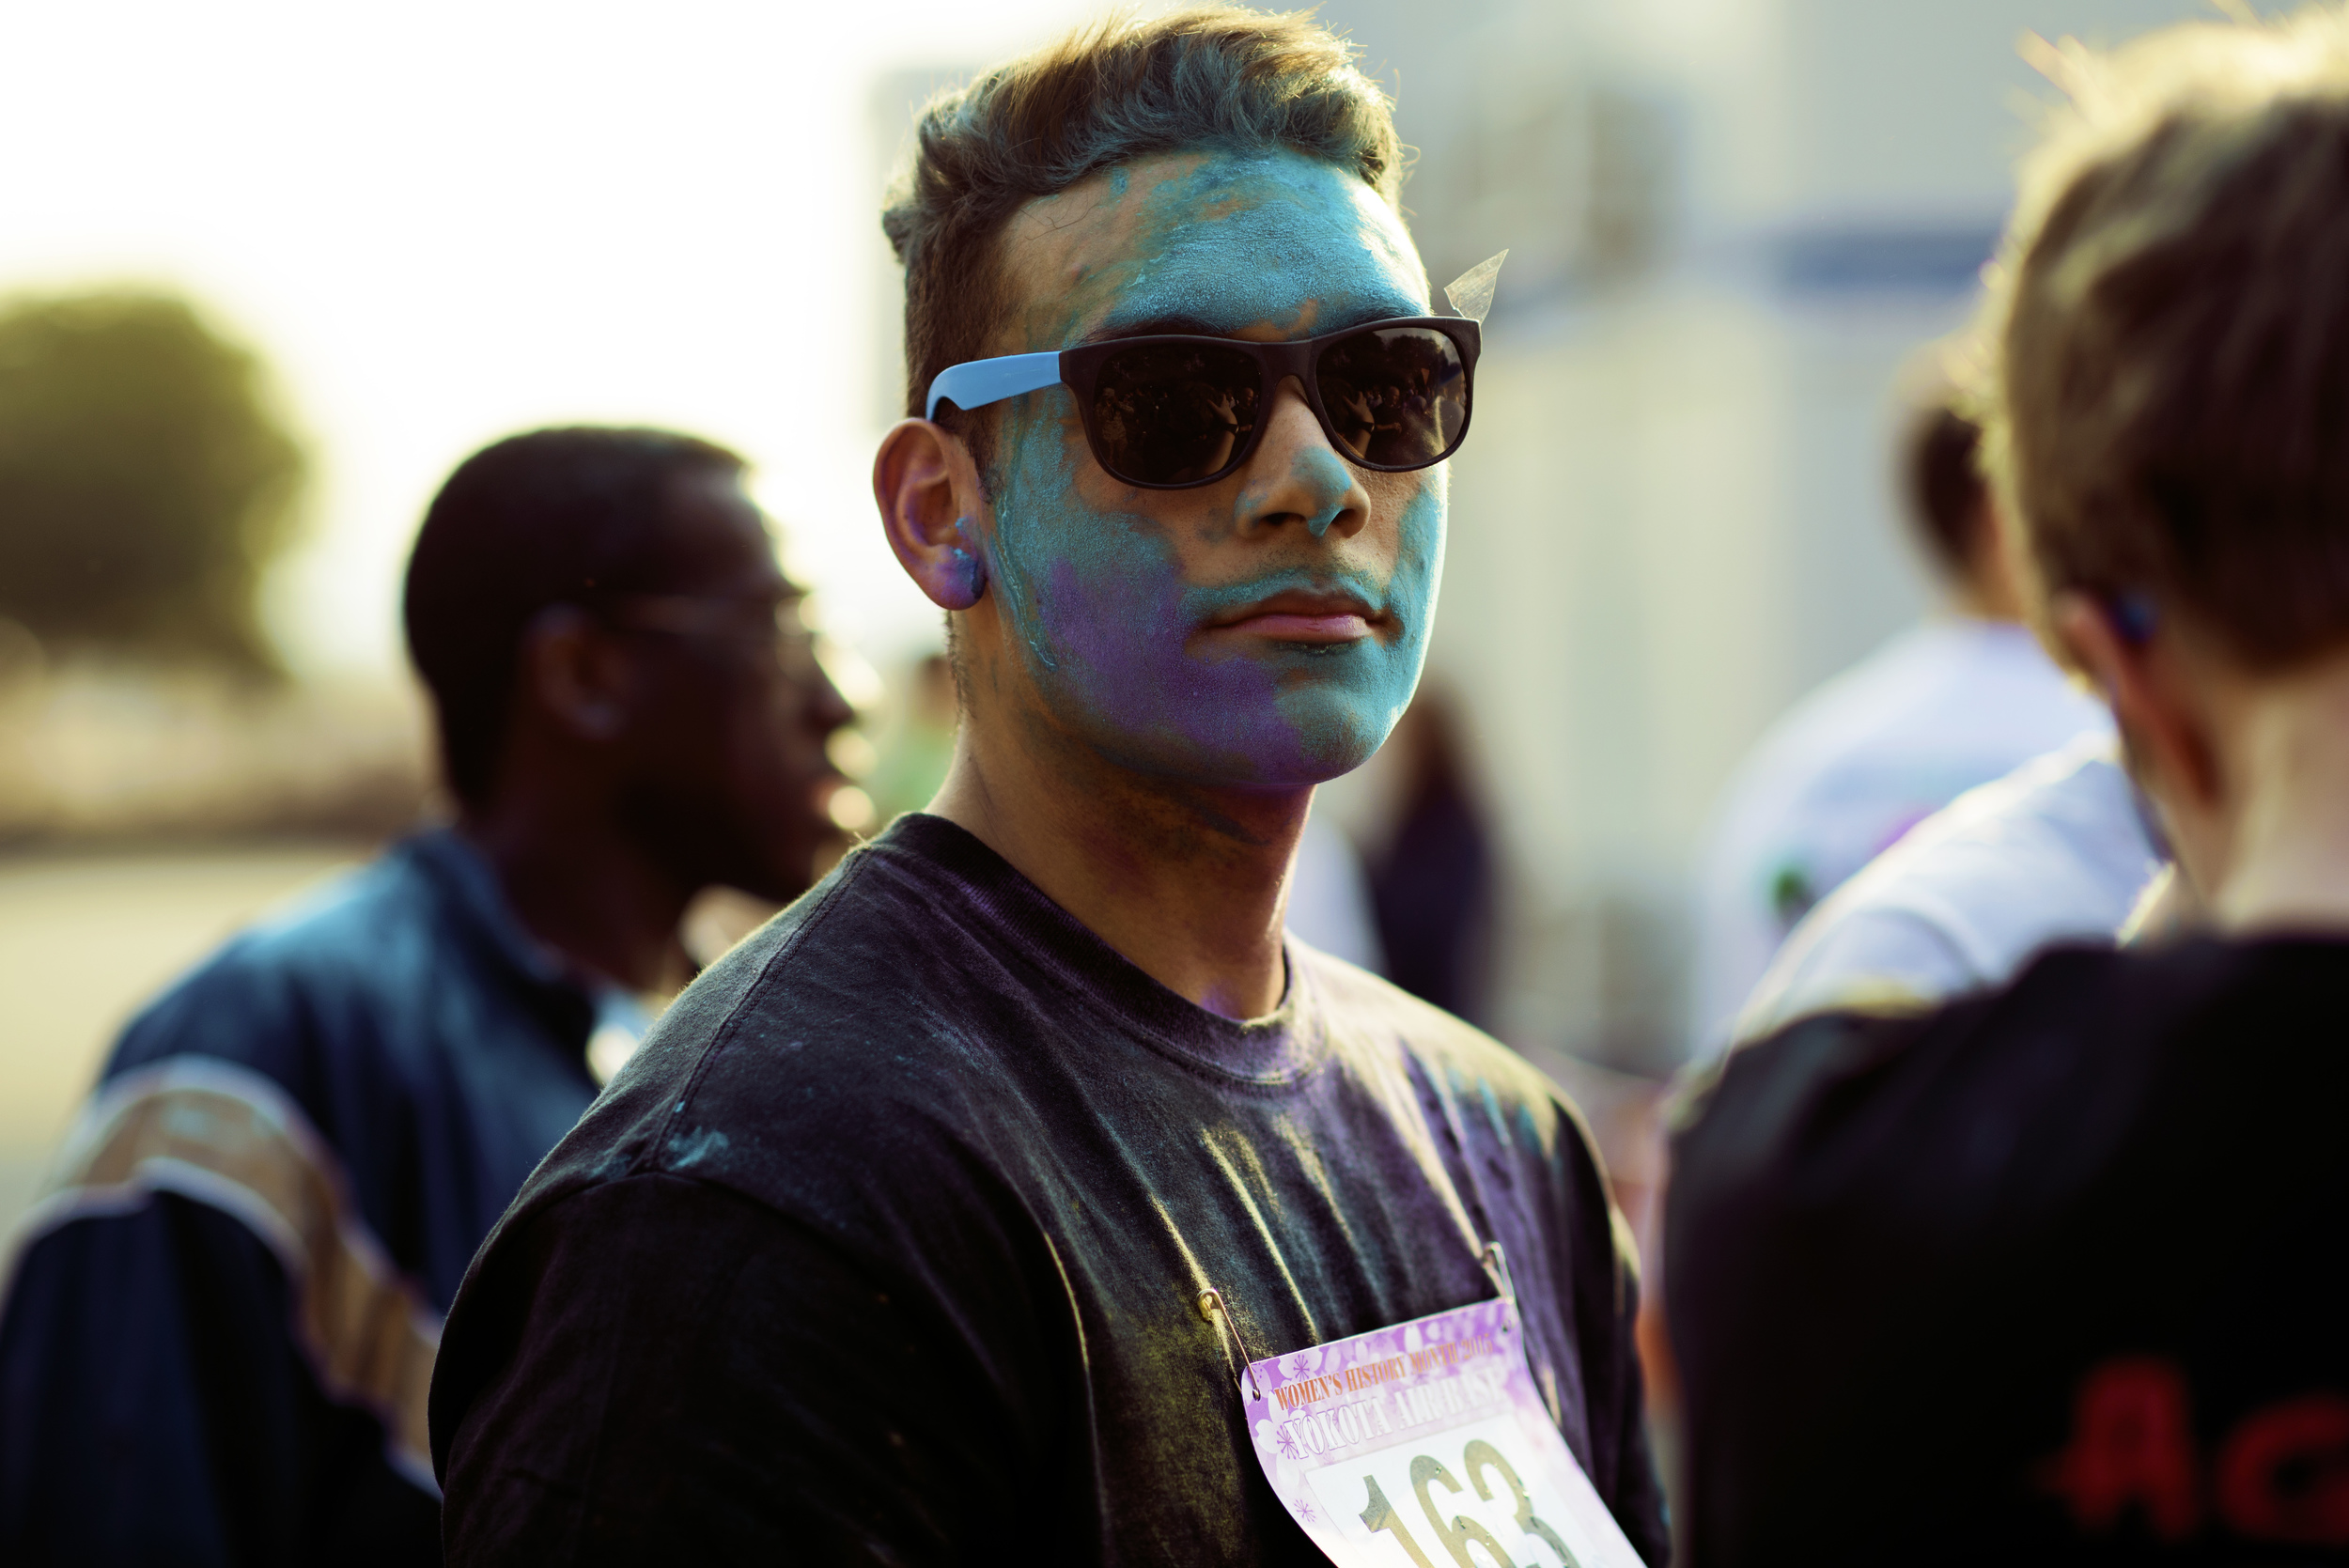 An Airman poses after running in the Women's History Month Wing Color Run, March 13, at Yokota Air Base, Japan. The 5k run was in celebration of Women's History Month, which honors the accomplishments of women throughout history. (U.S. Air Force photo by Airman 1st Class Delano Scott/Released)